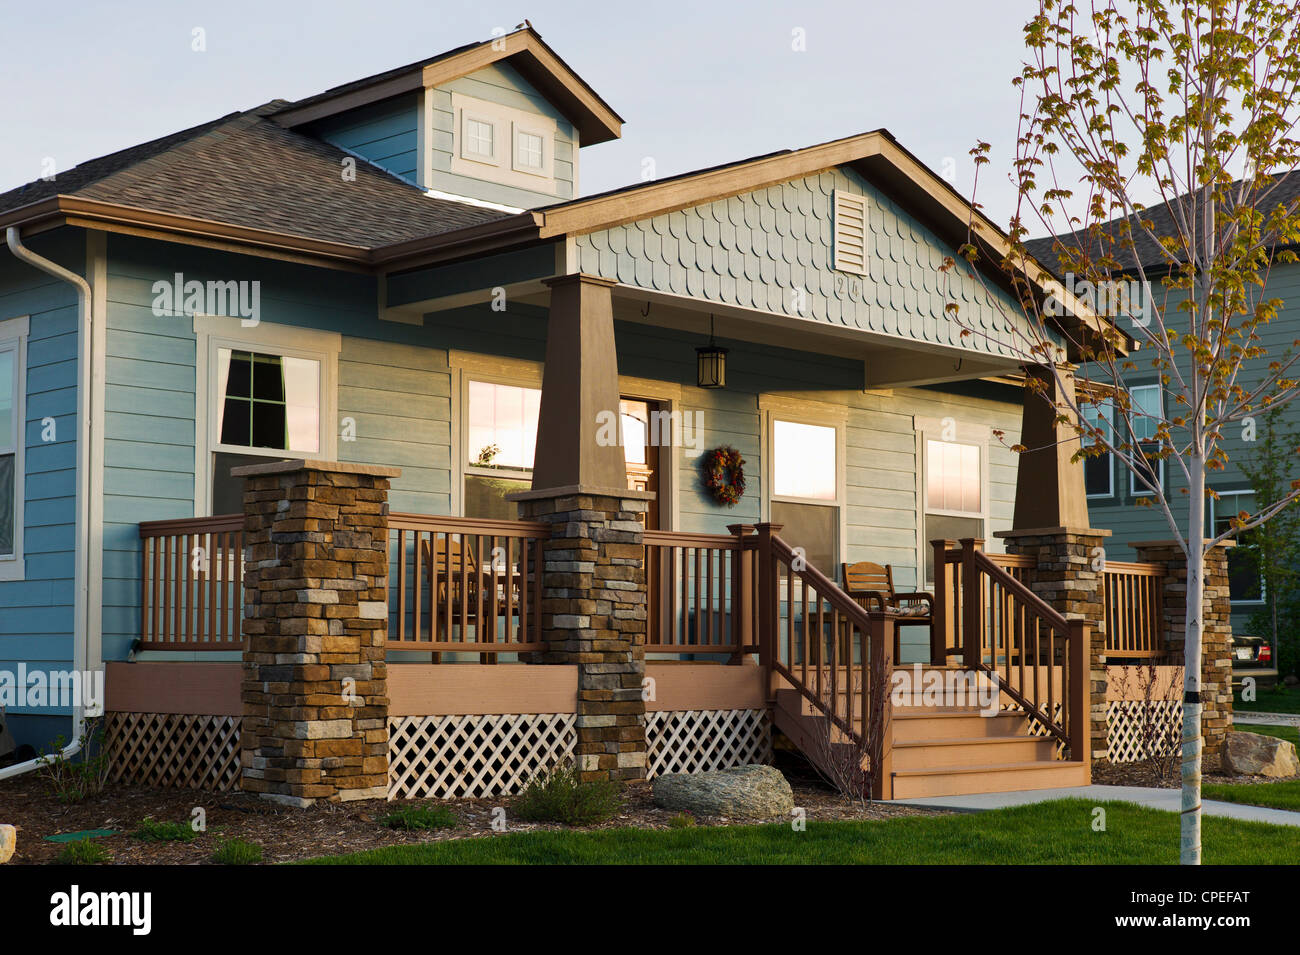 Covered front porch craftsman style home royalty free stock image - Craftsman Style Residential Homes In Colorado Usa